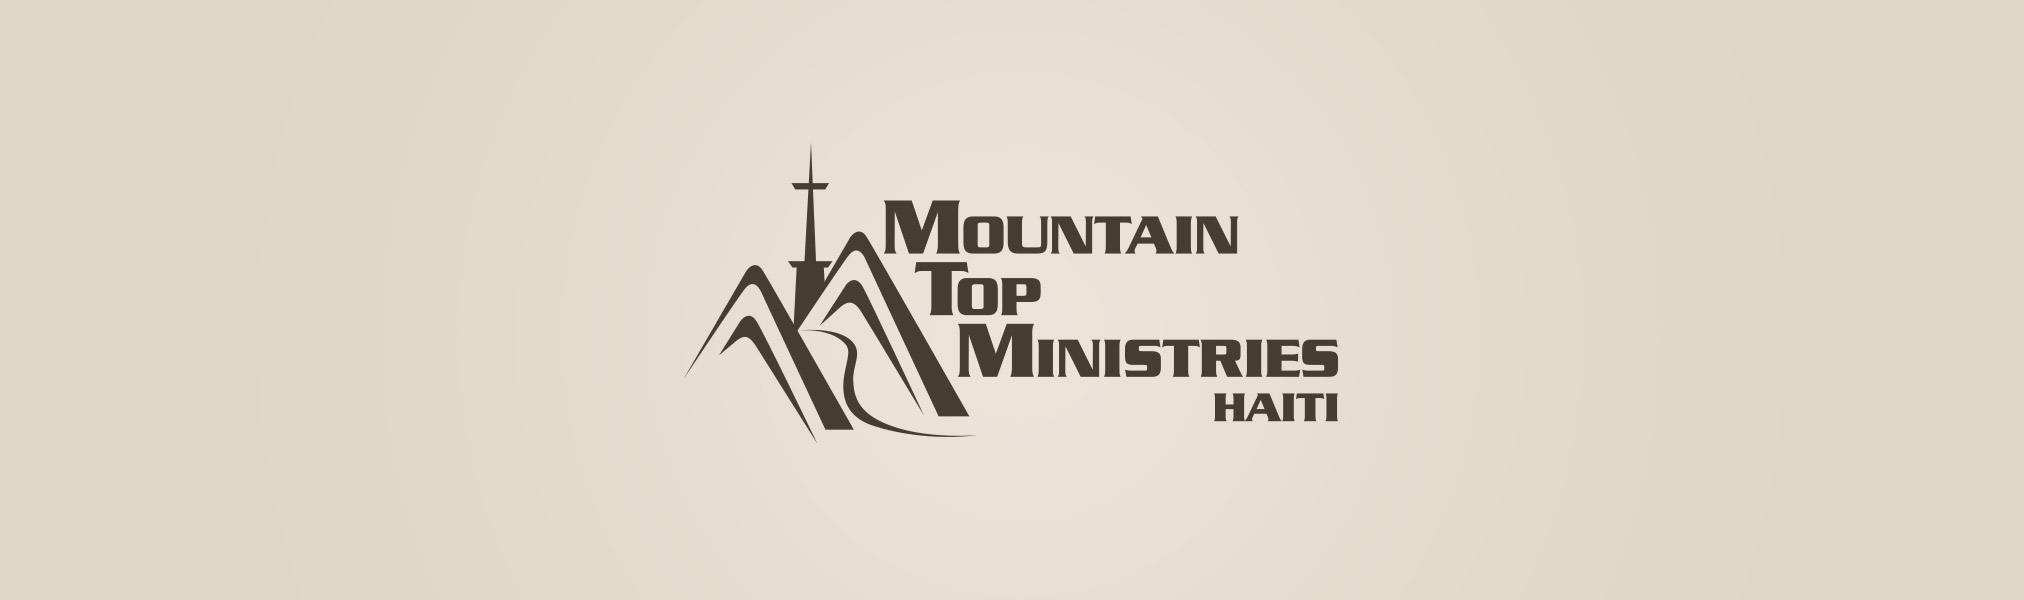 Mountain Top Ministries